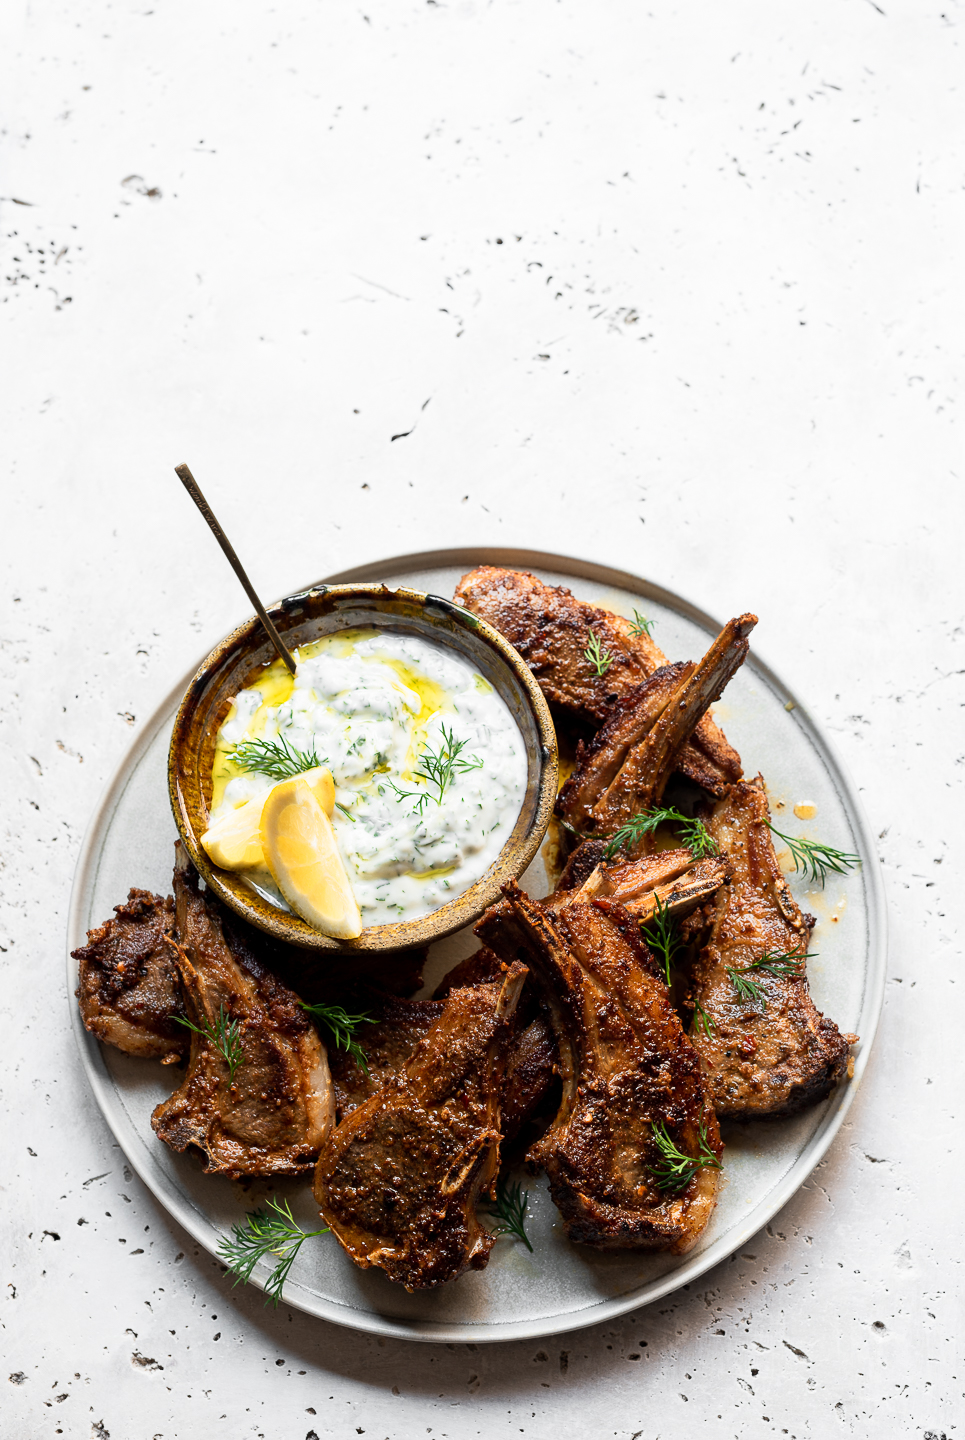 Marinated Spiced Lamb Chops